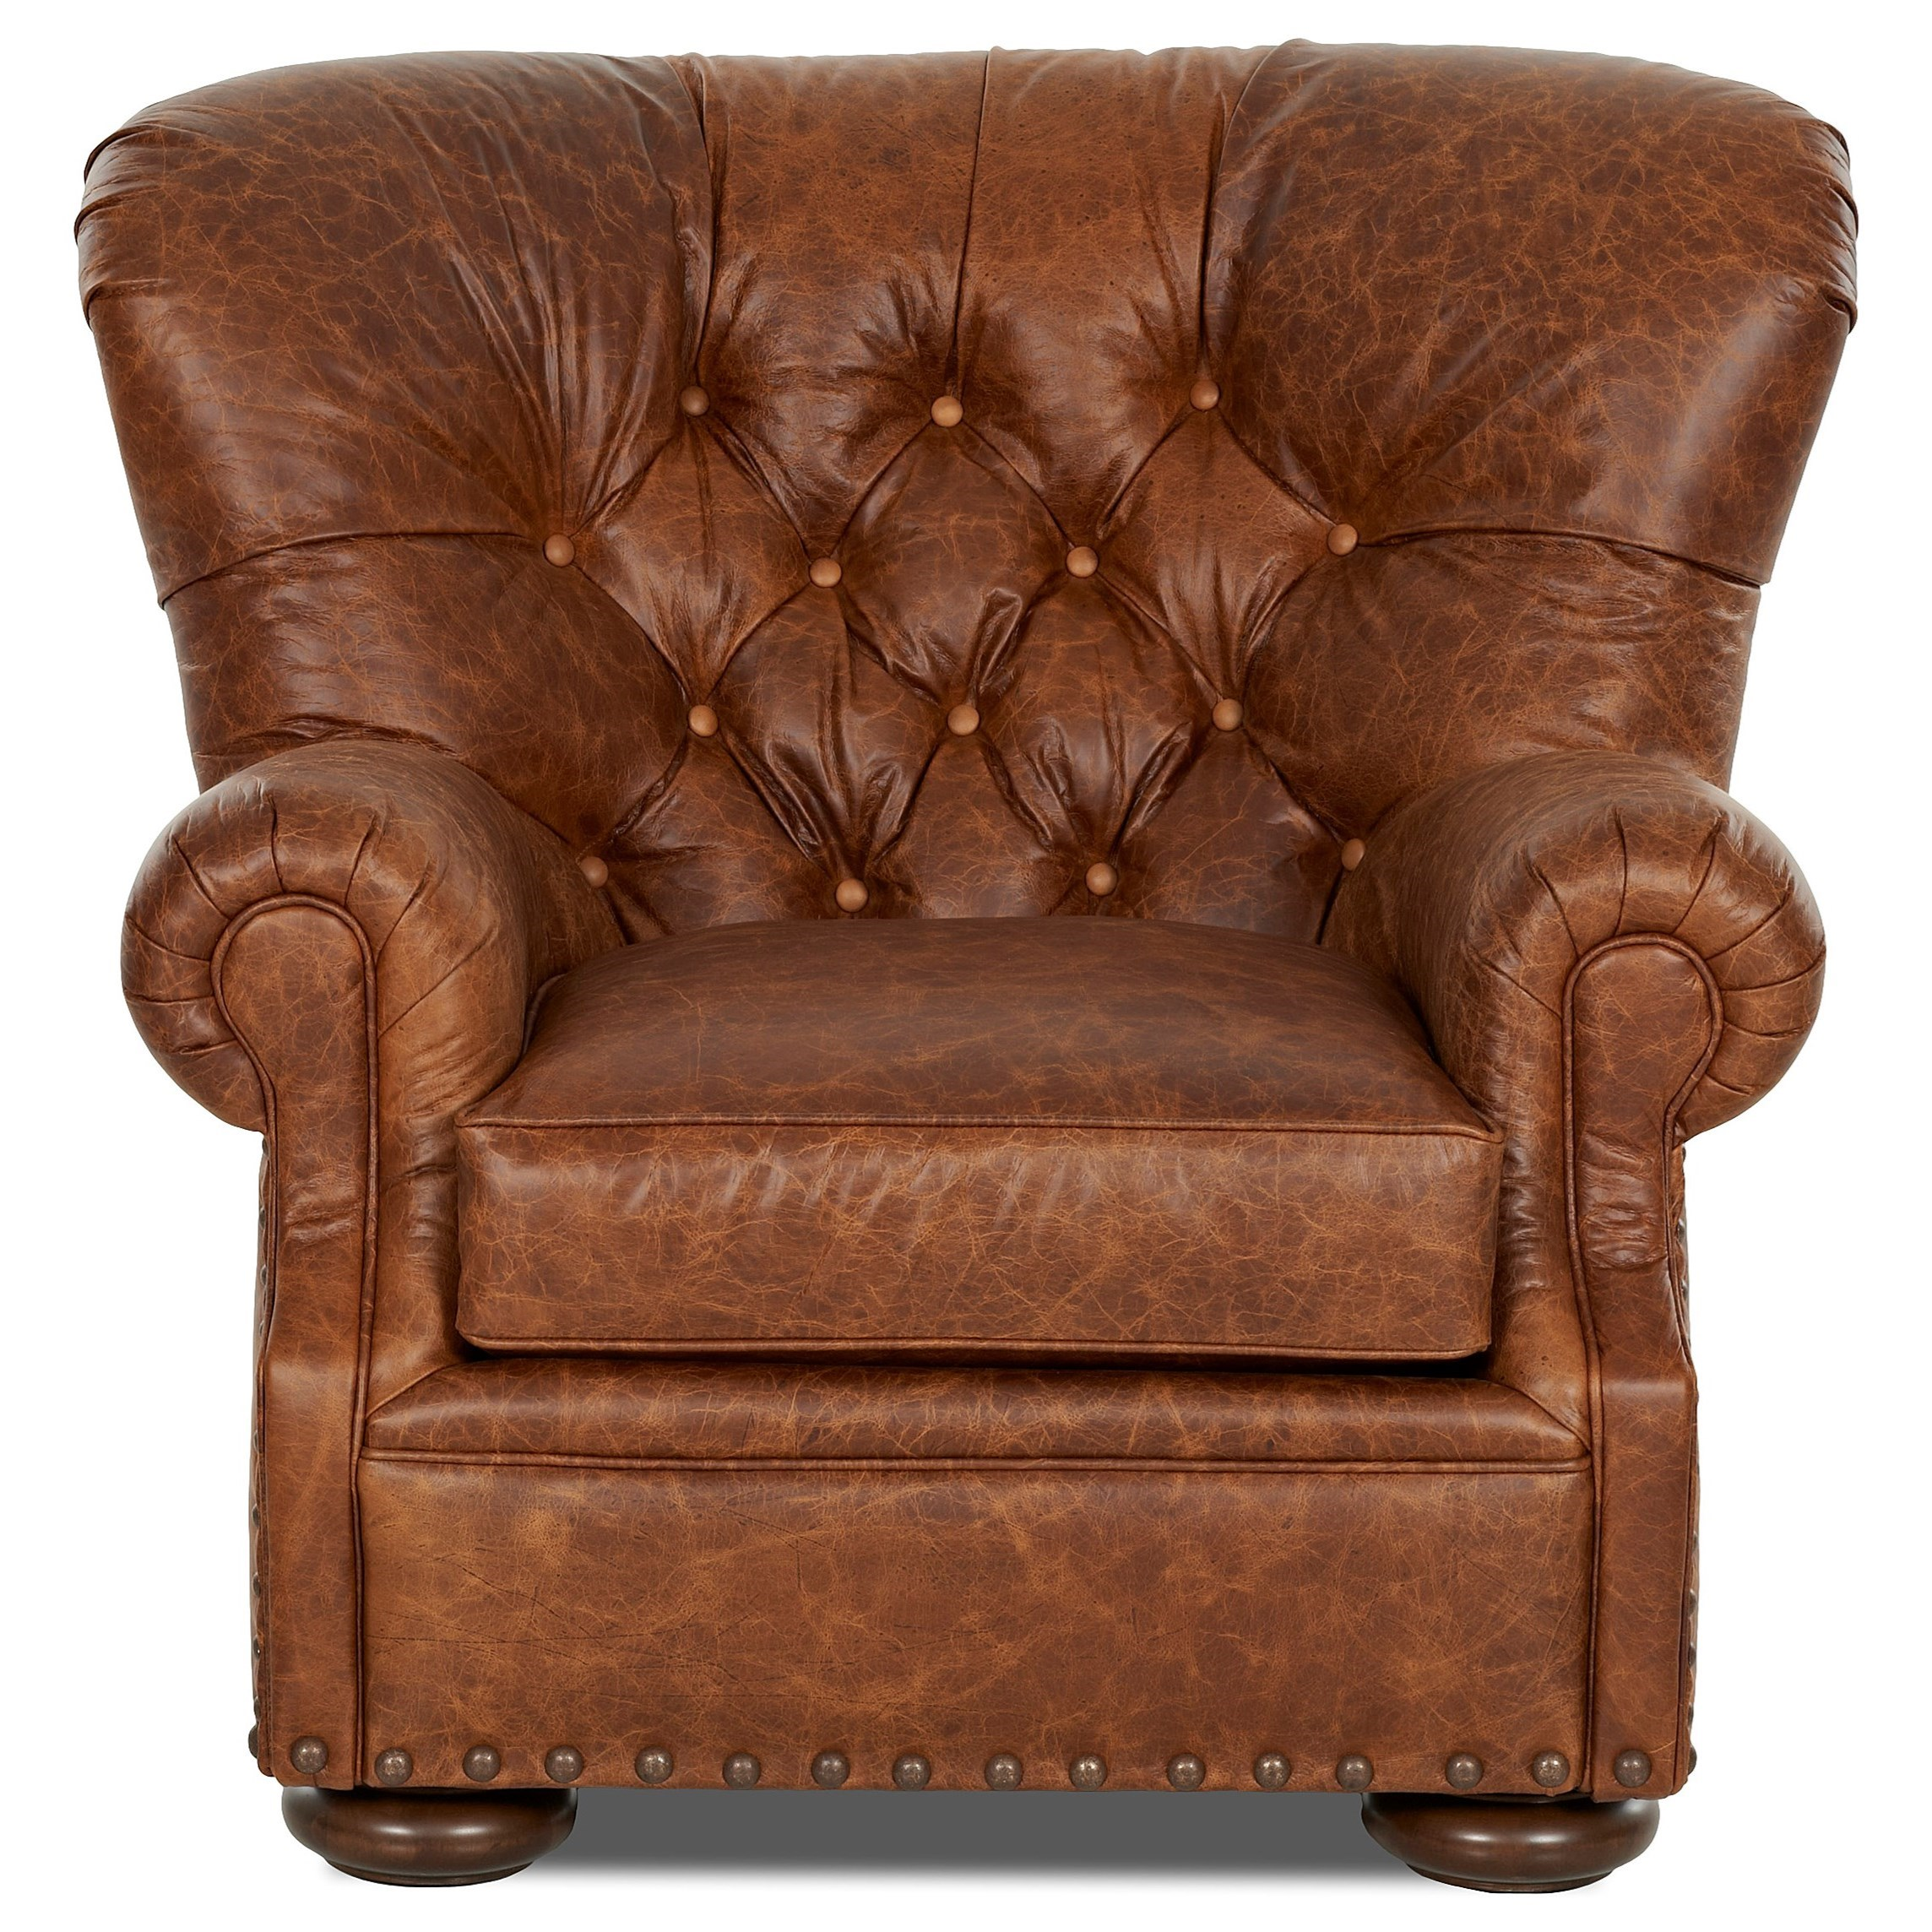 Tufted Leather Chair and Ottoman Set by Klaussner